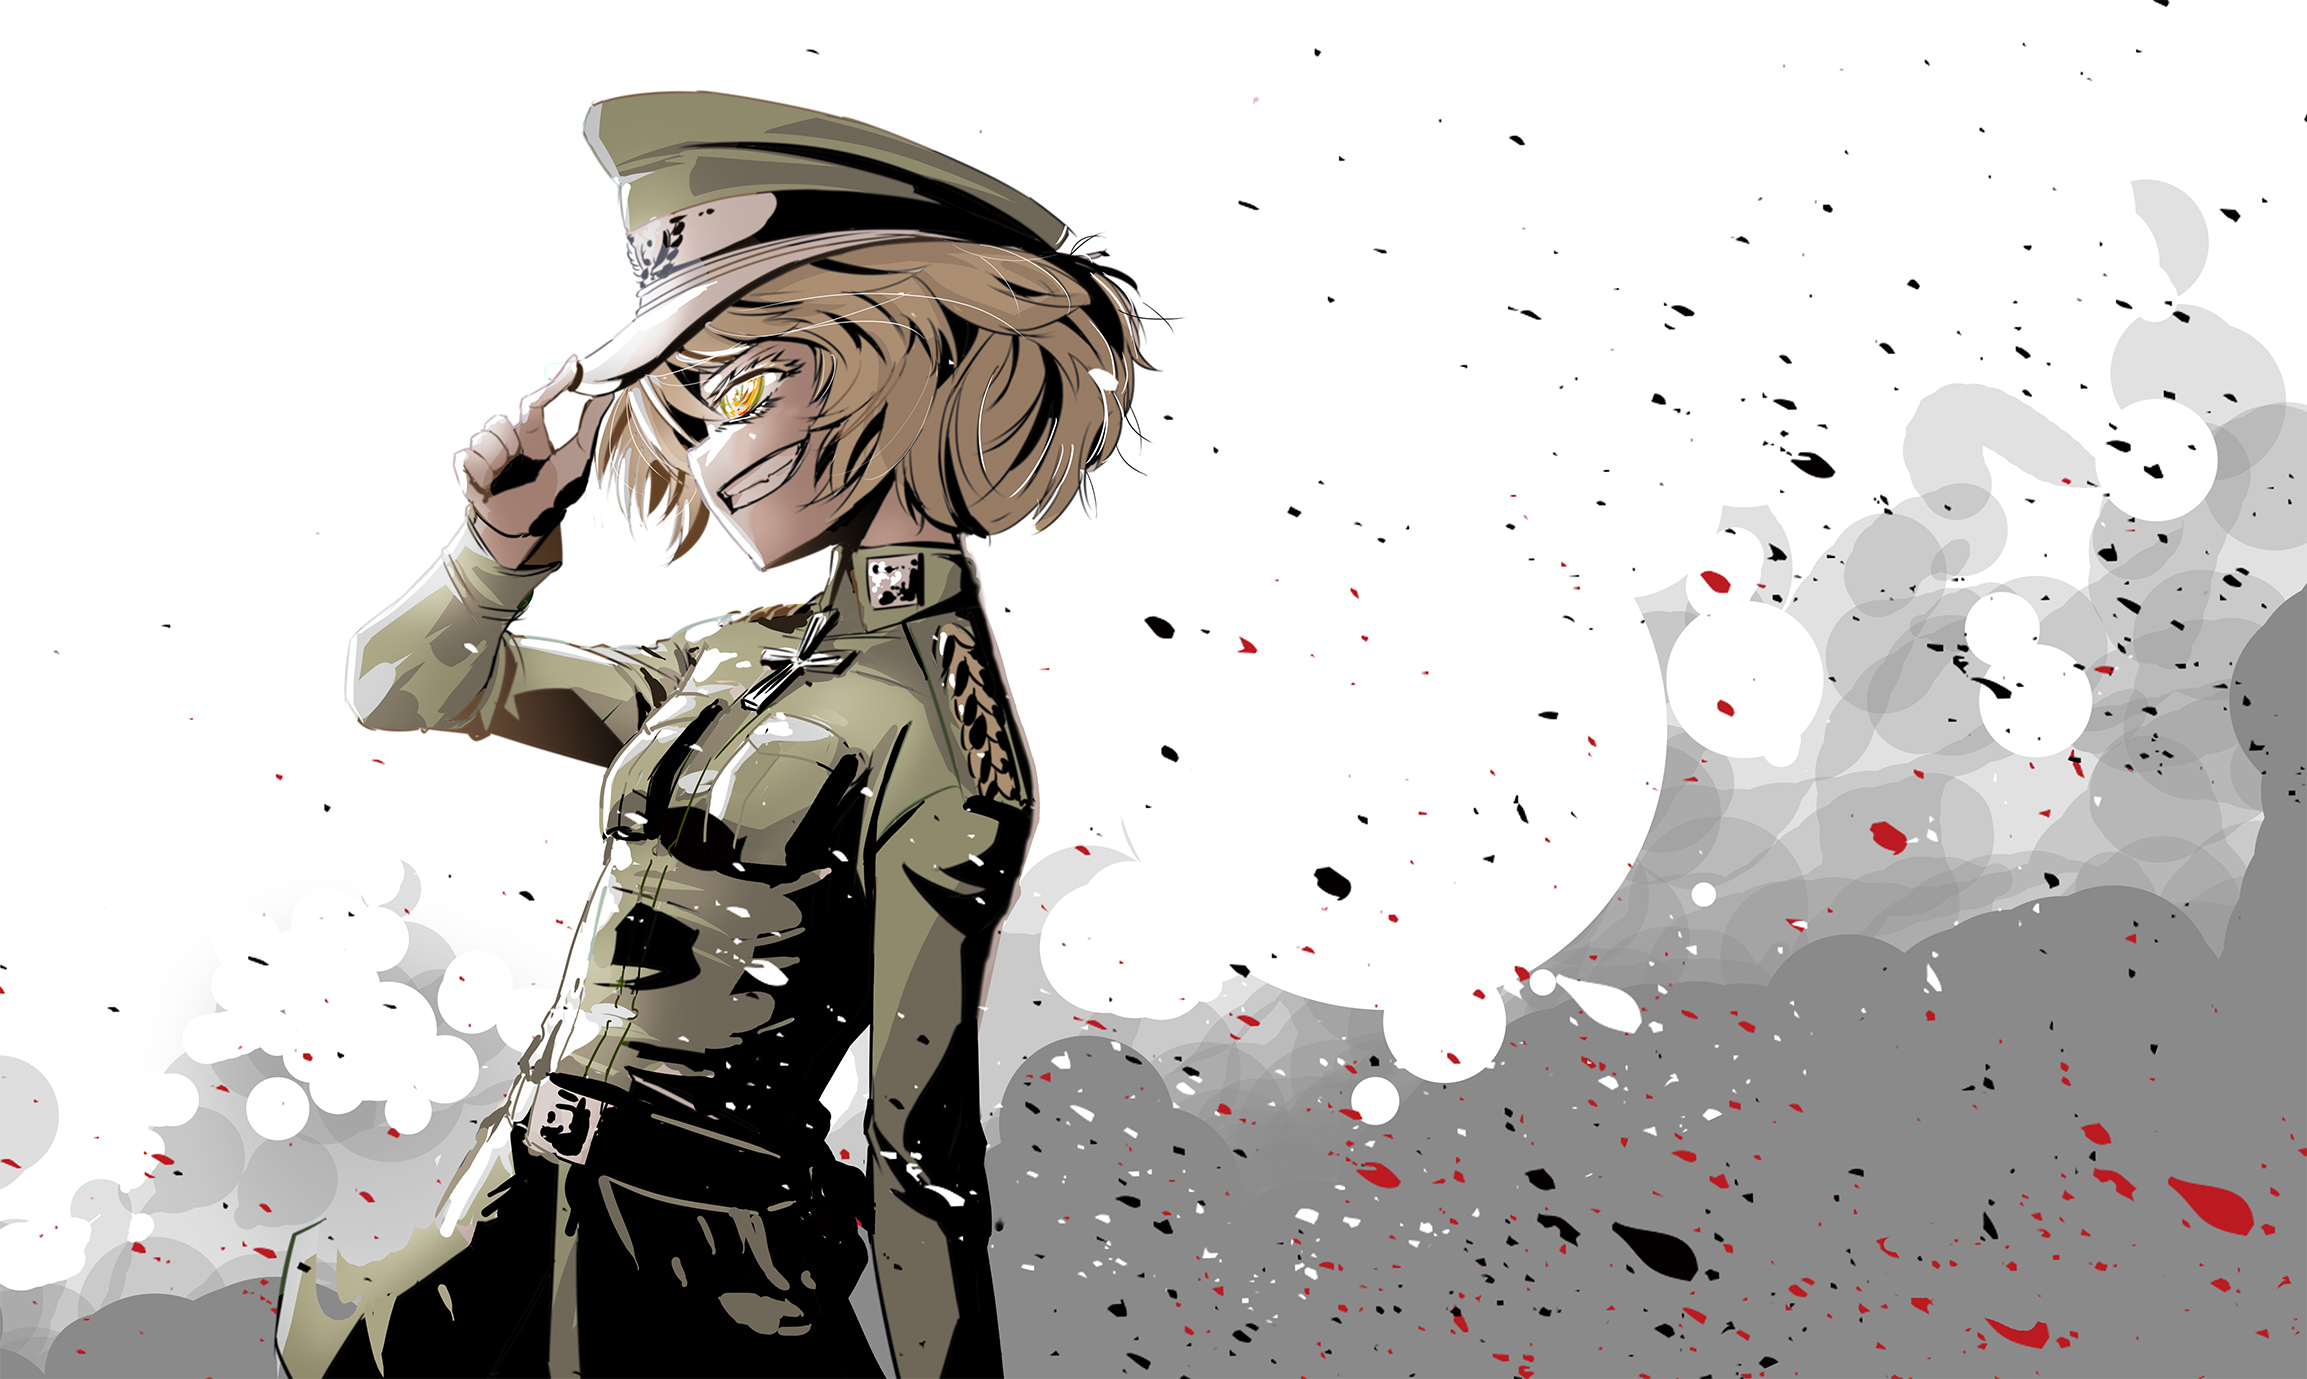 Military Anime Wallpapers Hd Quotes Backgrounds With Art: Youjo Senki Full HD Wallpaper And Background Image